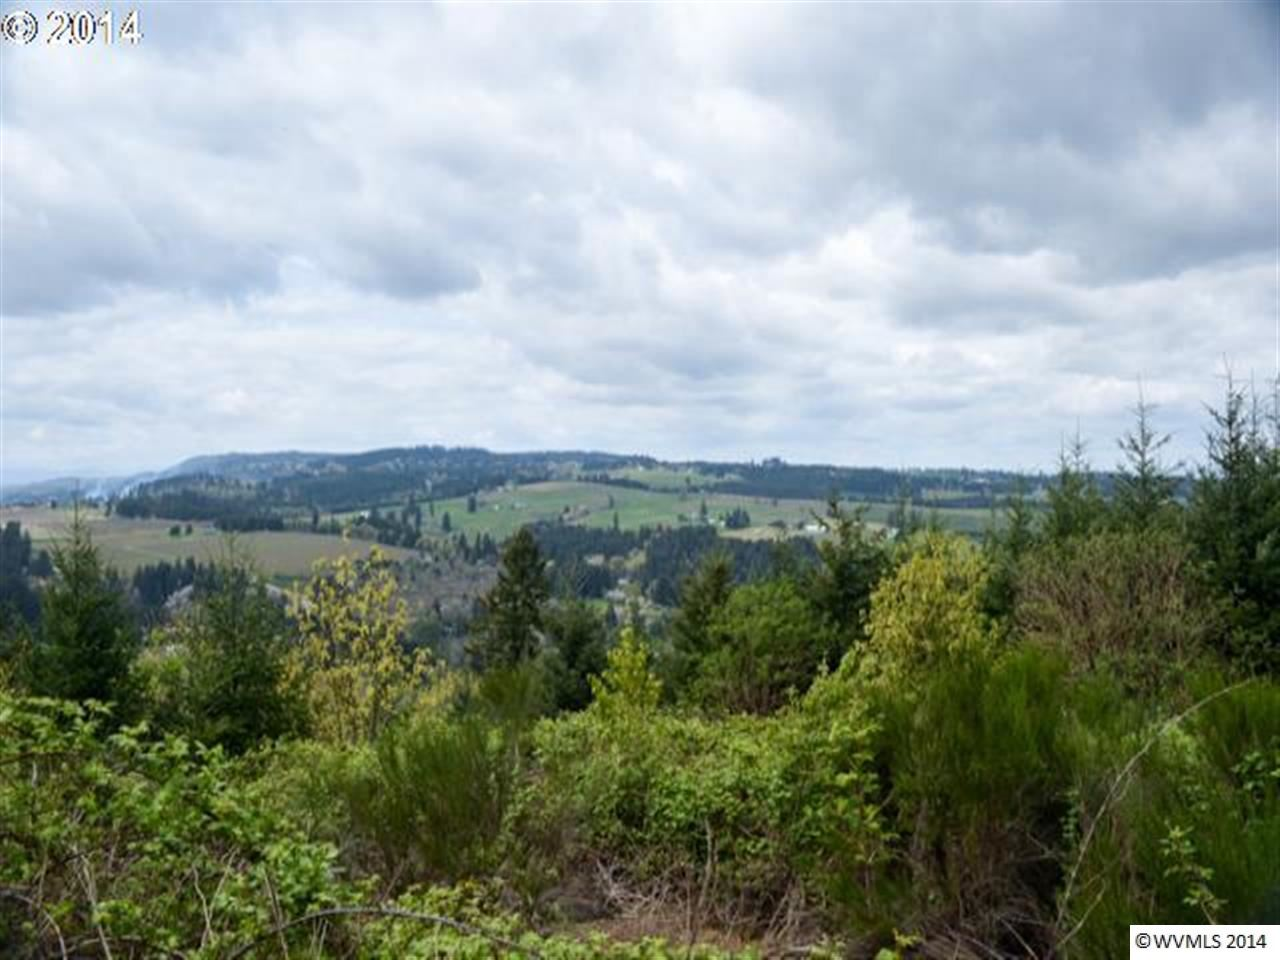 20 acres by Newberg, Oregon for sale